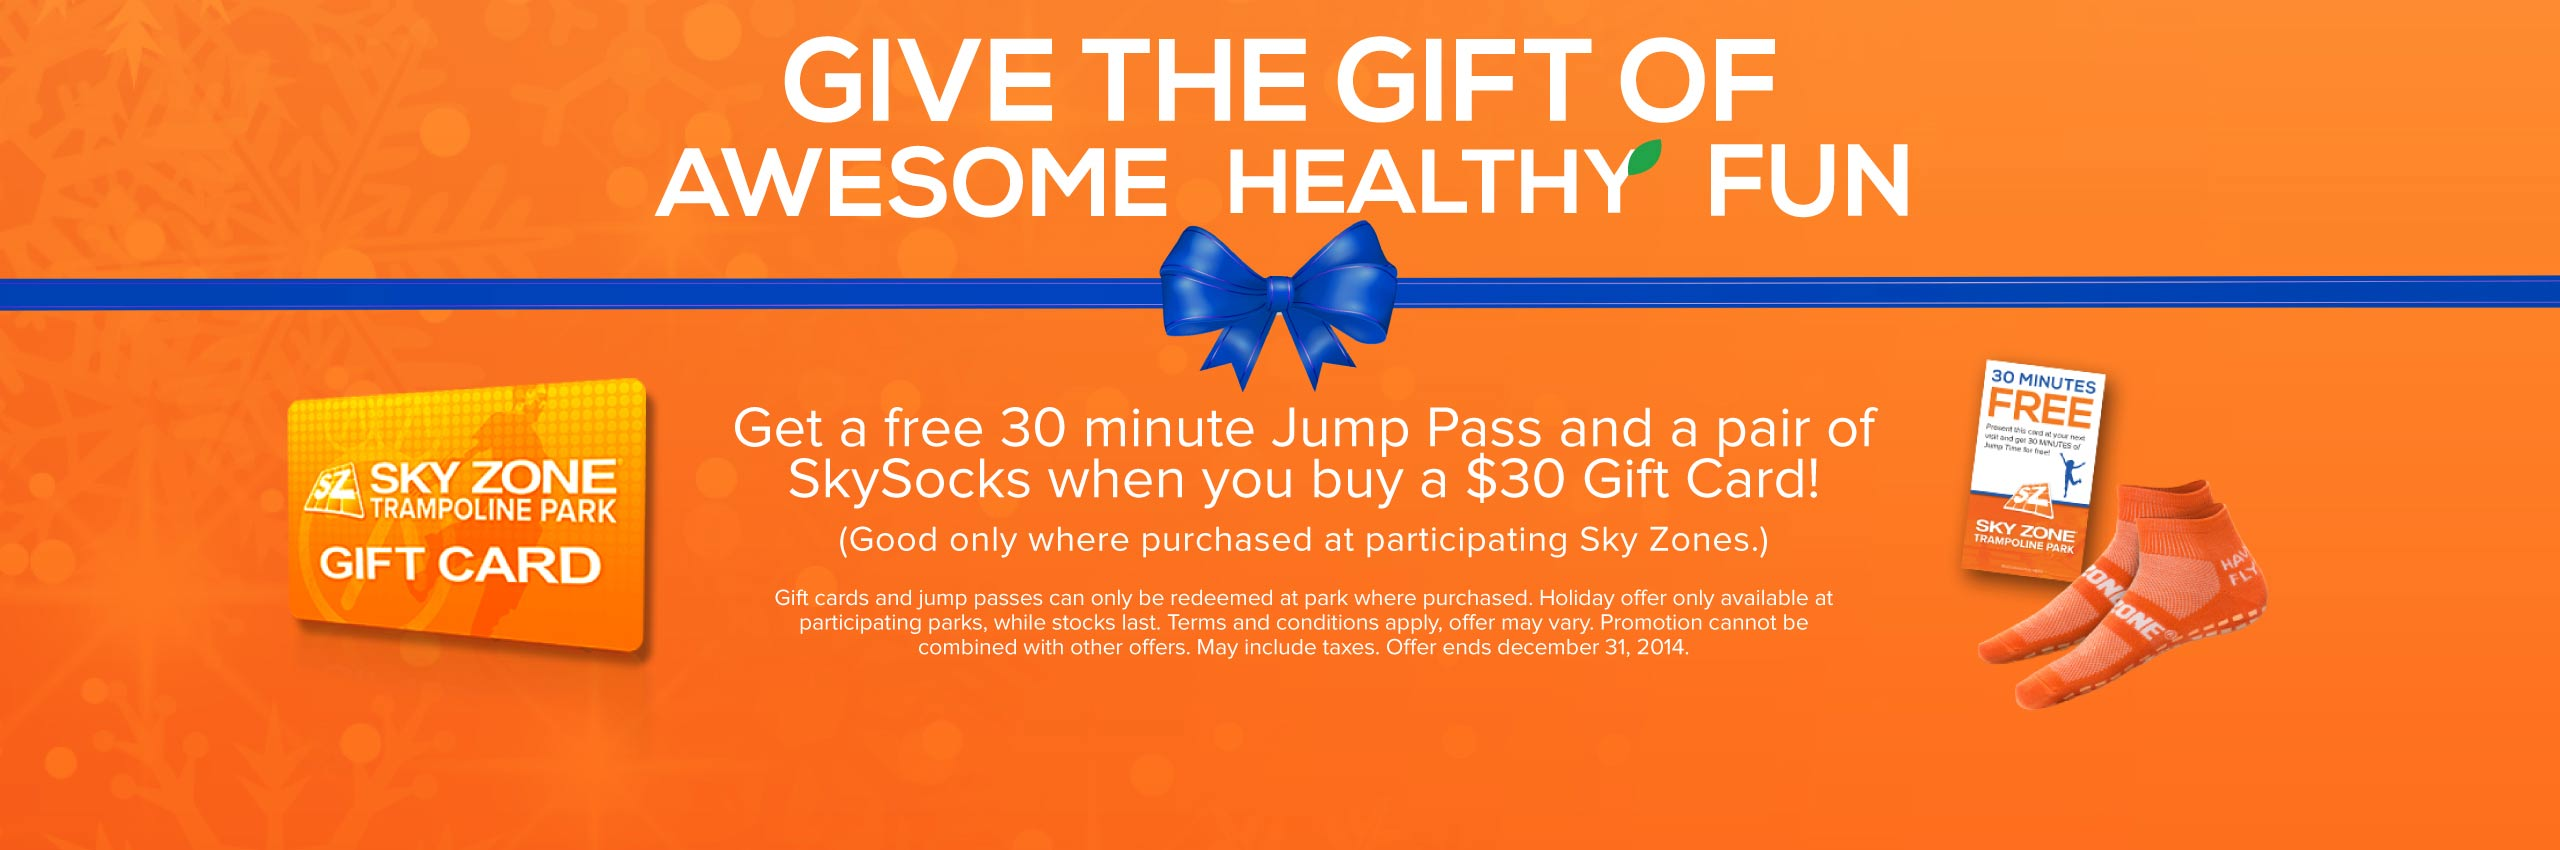 image regarding Sky Zone Printable Coupons referred to as 55% off Sky zone sports activities coupon codes, printable coupon code